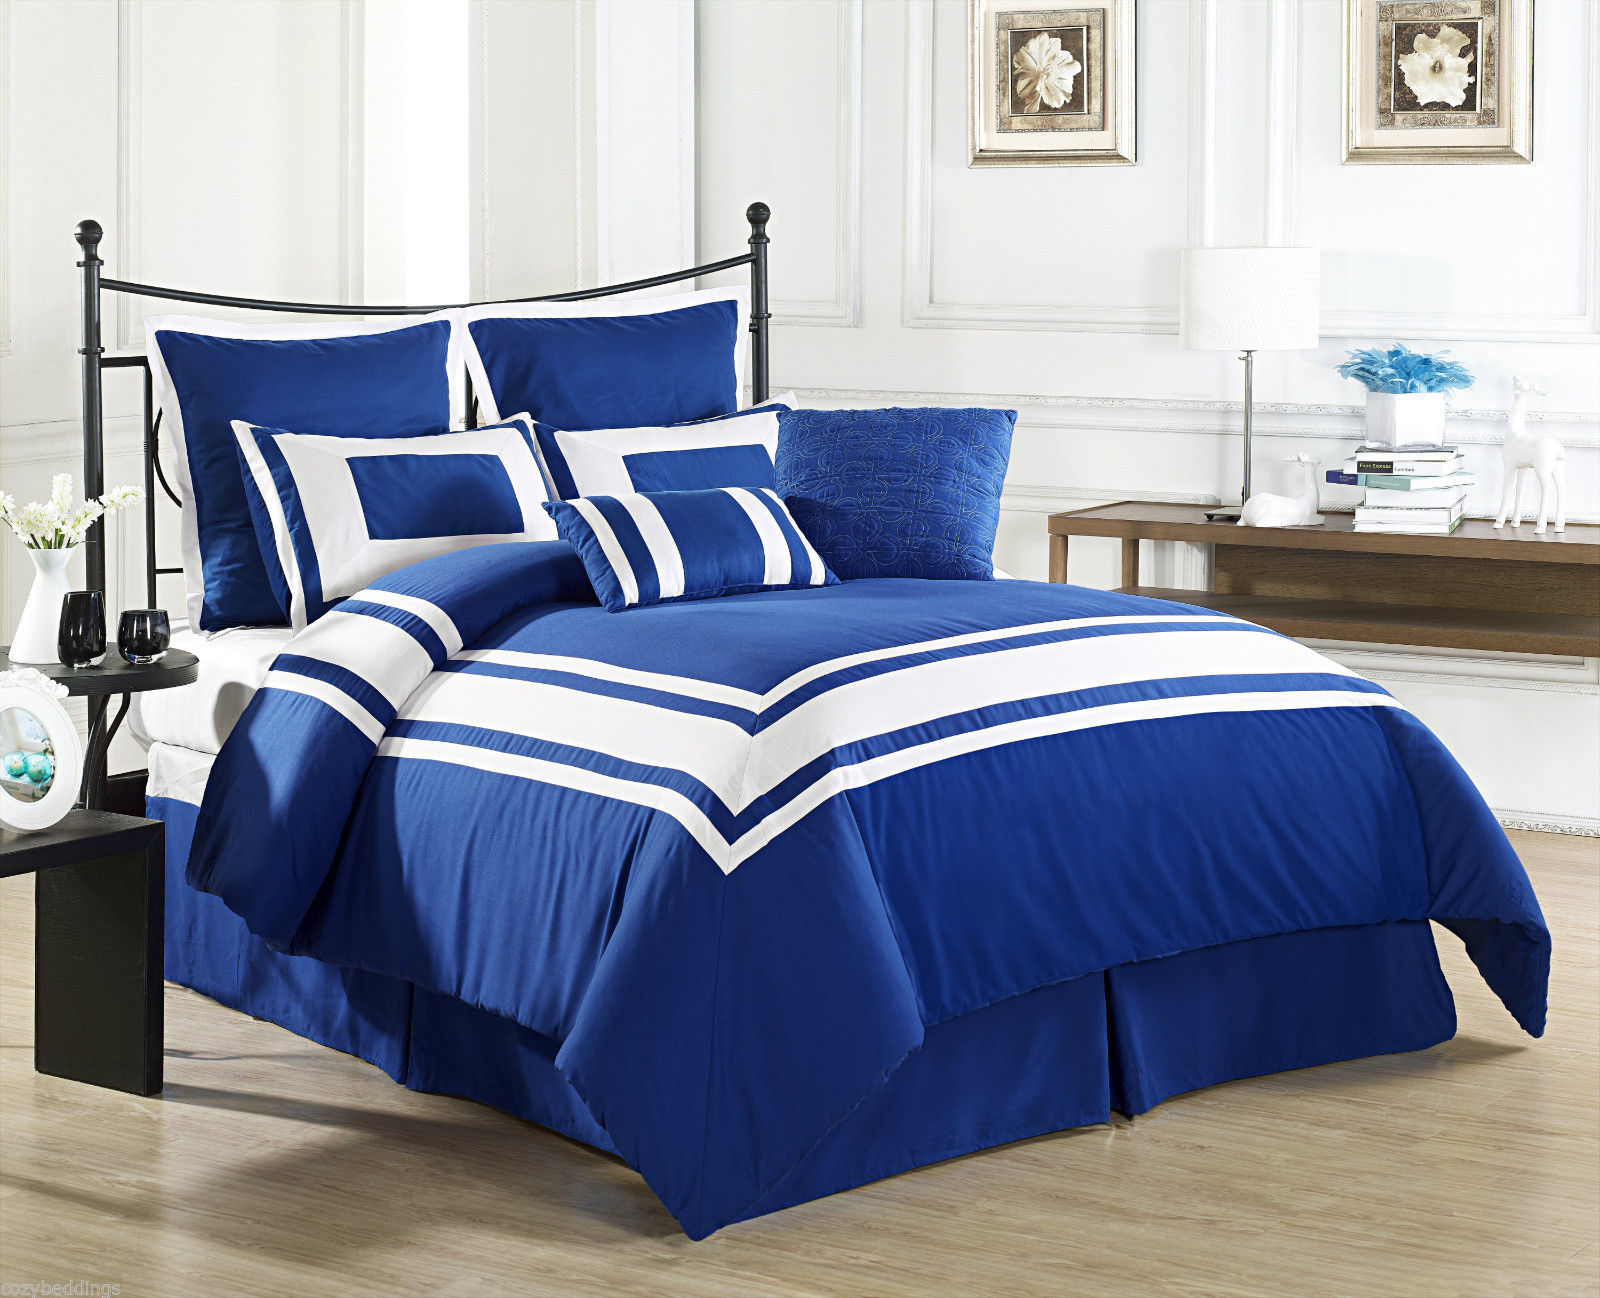 Image of: Lux Blue and White Bed Color